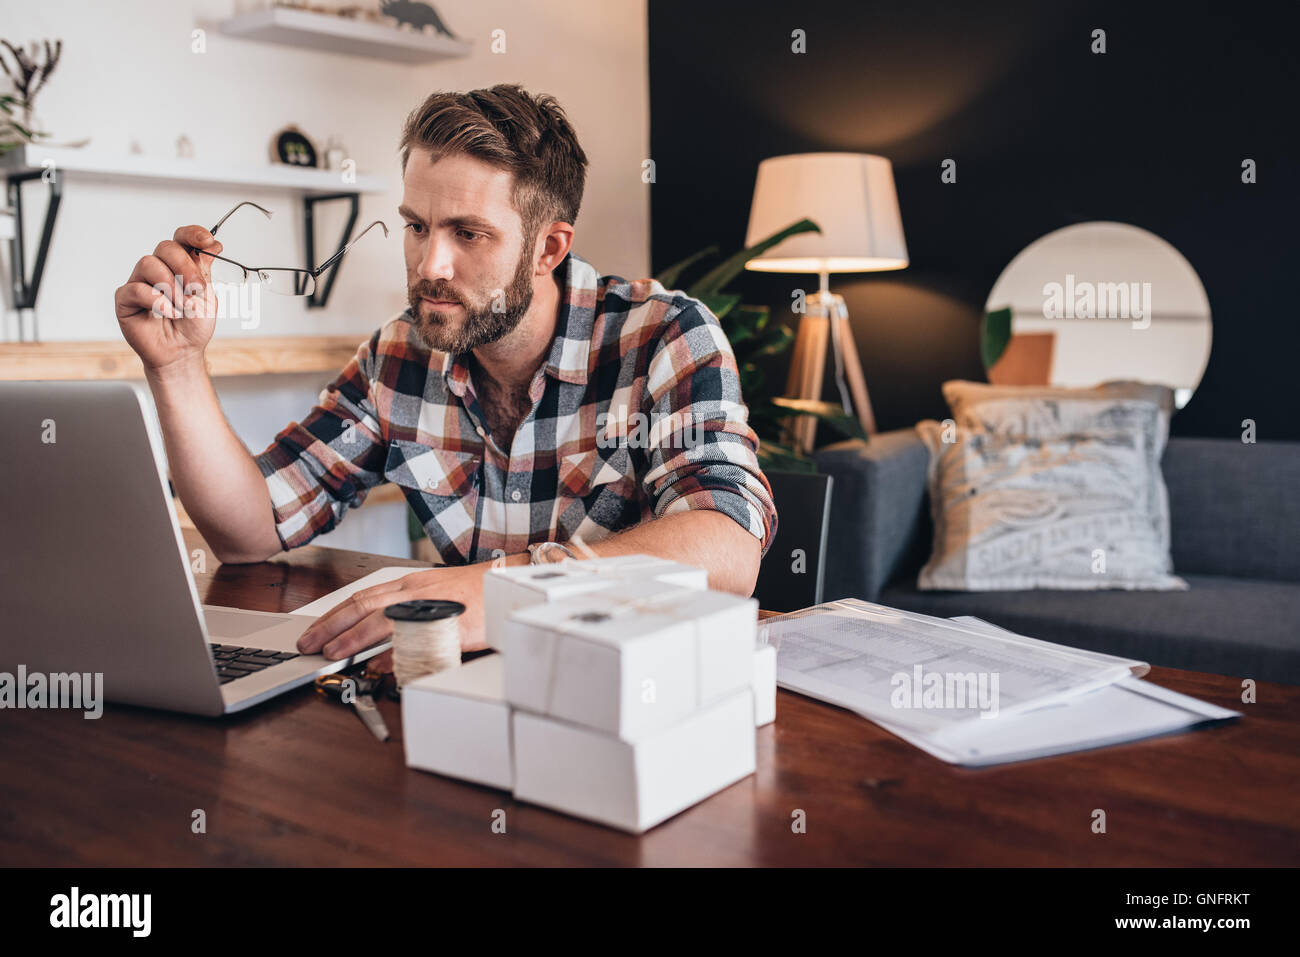 Putting in the hours to build his small business - Stock Image